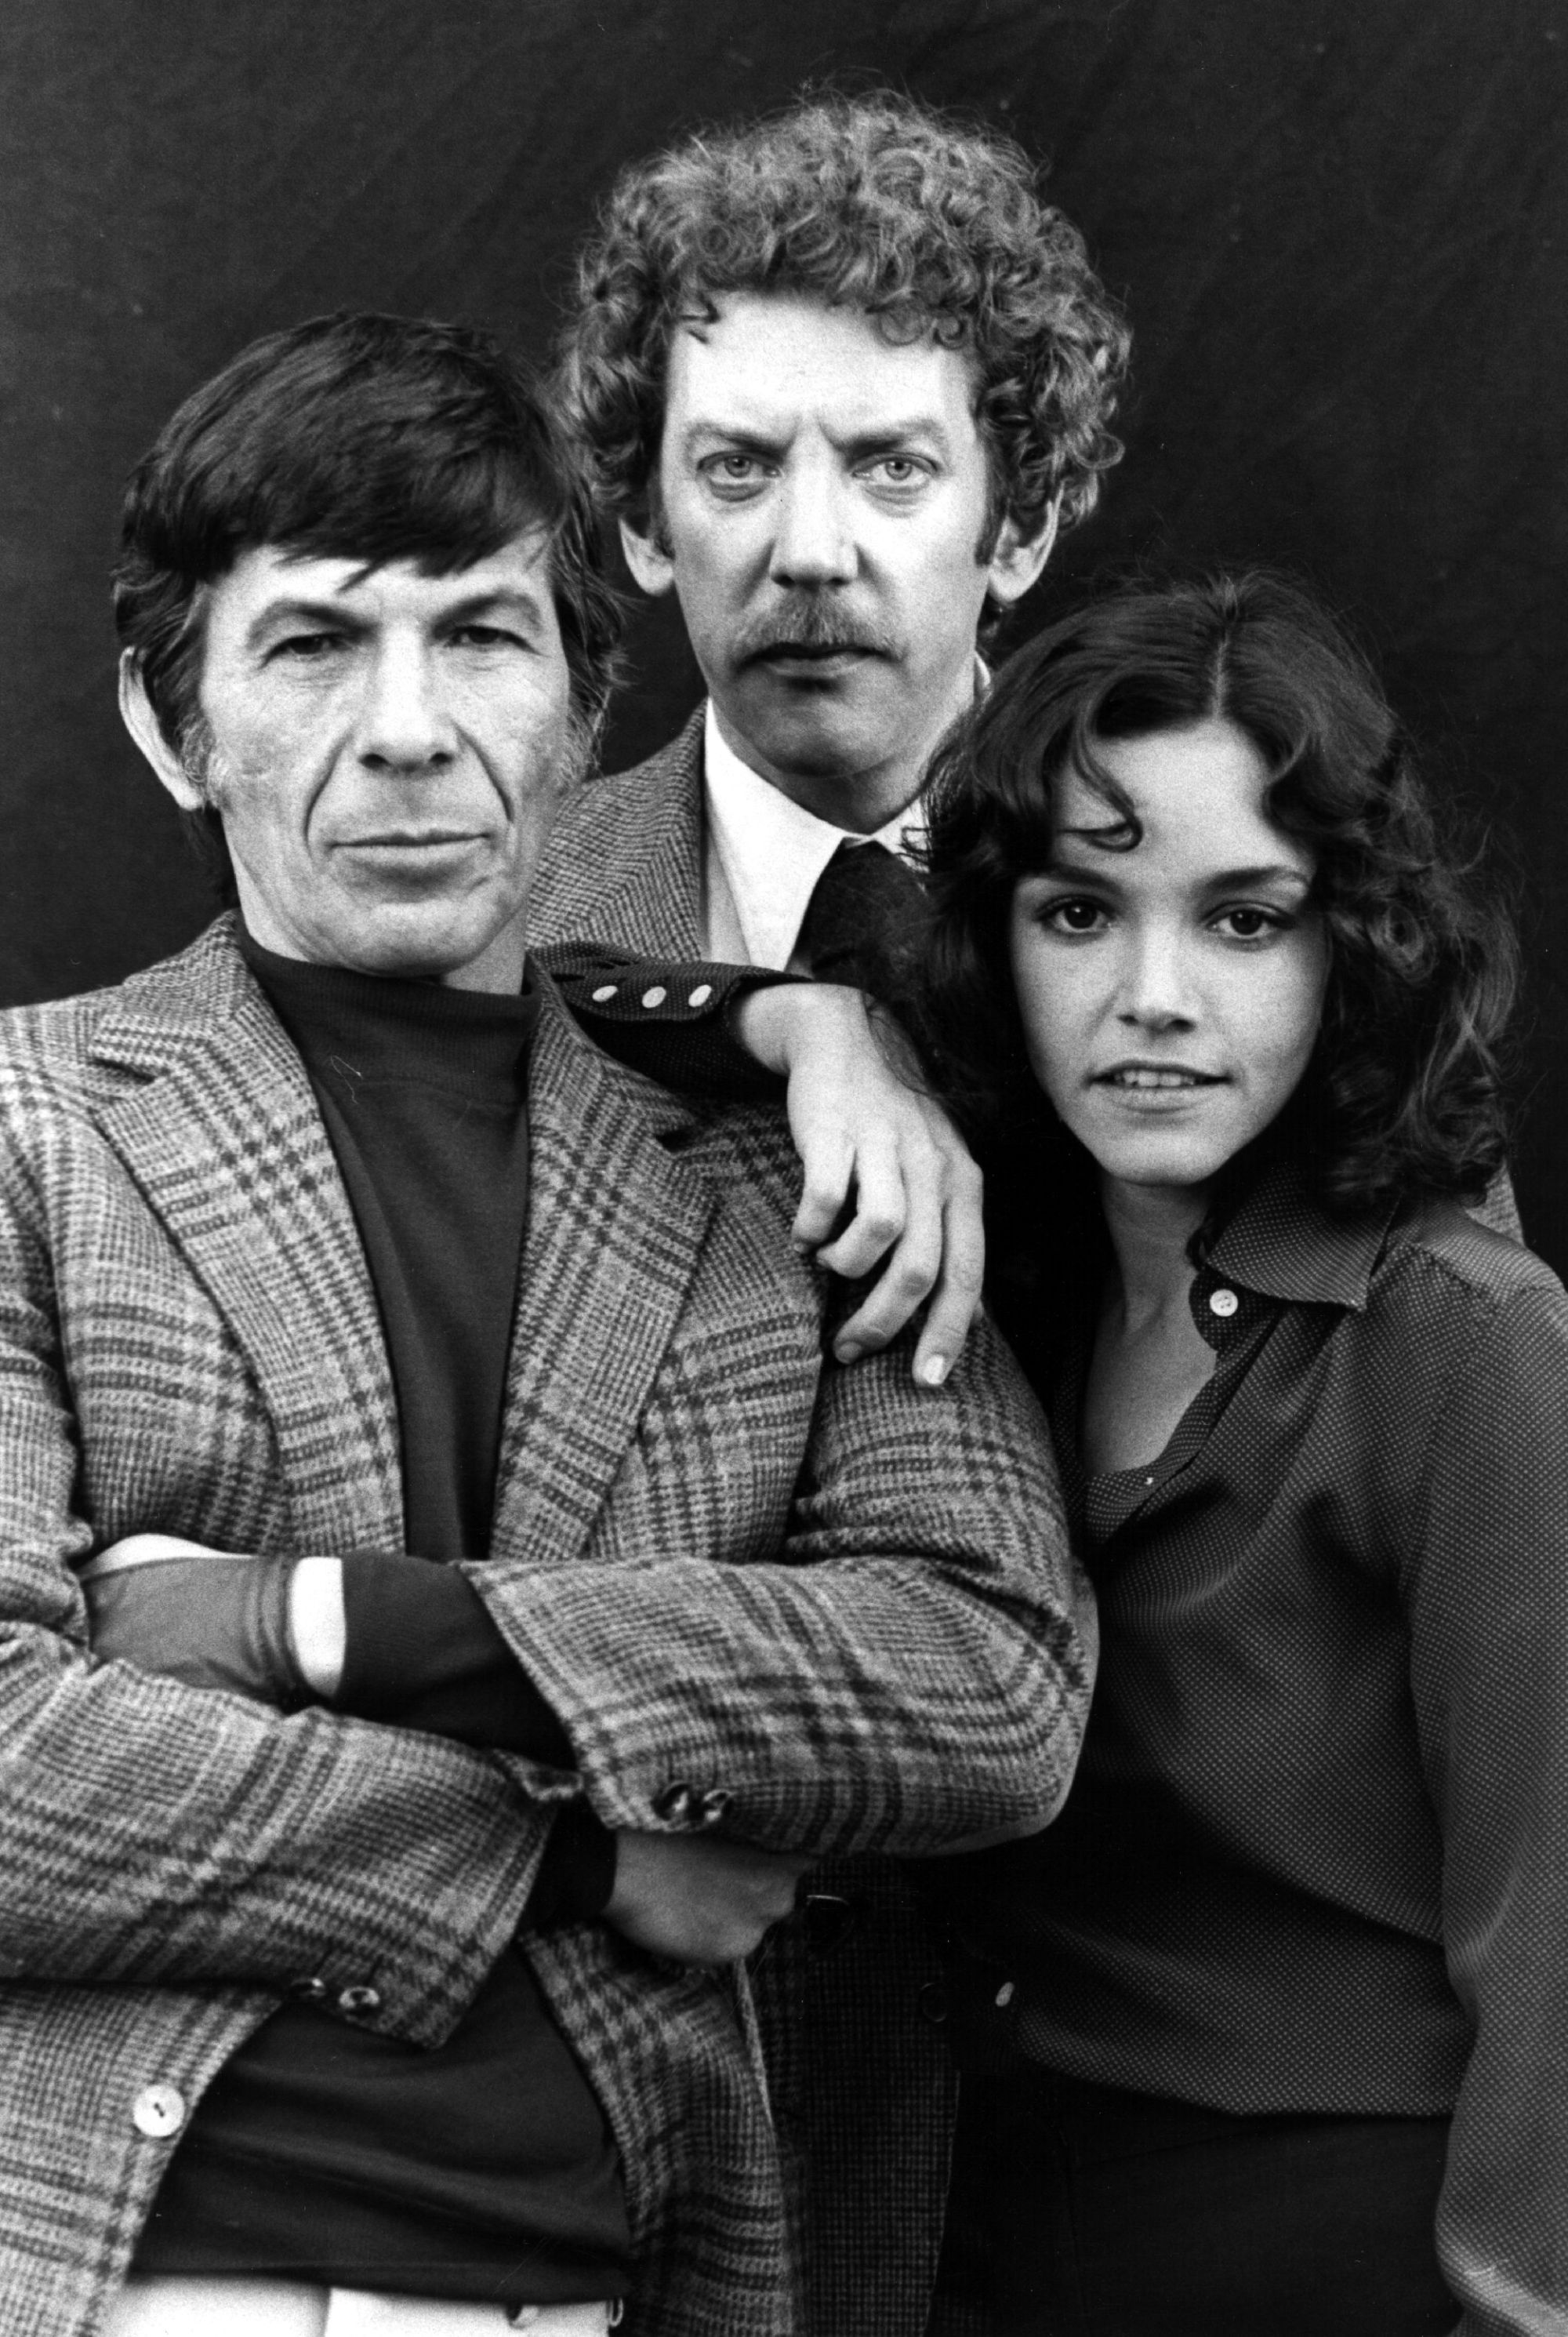 Leonard Nimoy - Brooke Adams - Donald Sutherland - Invasion of the Body snatchers - Invasione Ultracorpi - remake 1978